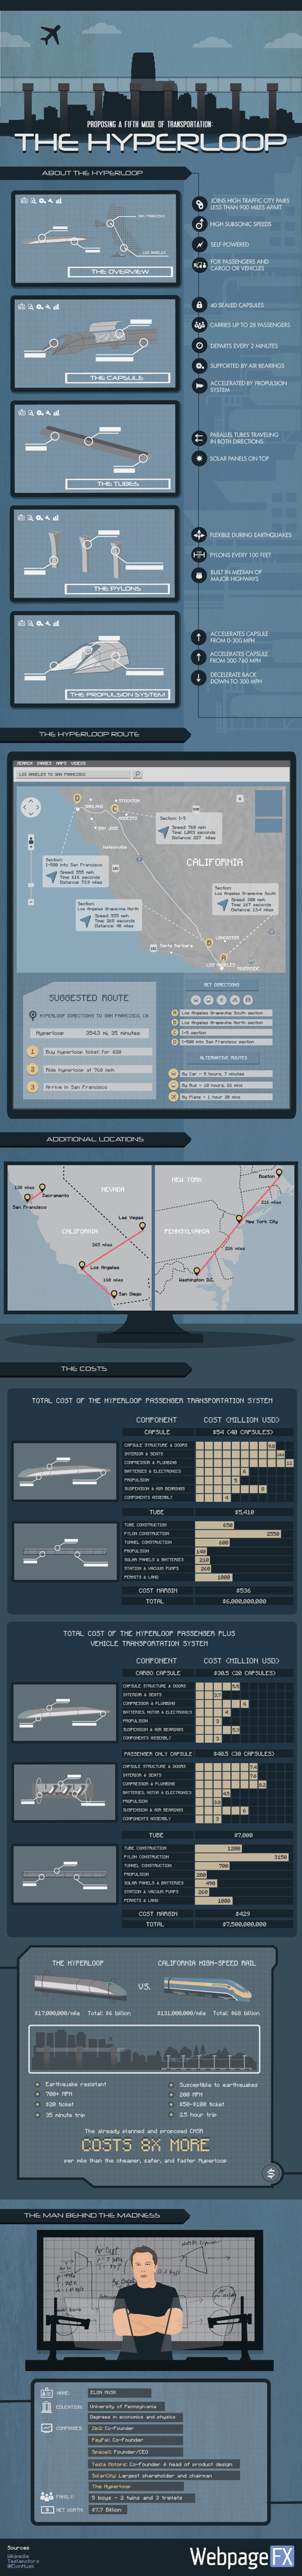 hyperloop, infographic, elon musk, transportation, green transportation, world's fastest train, green design, sustainable design, solar power, renewable energy, green technology